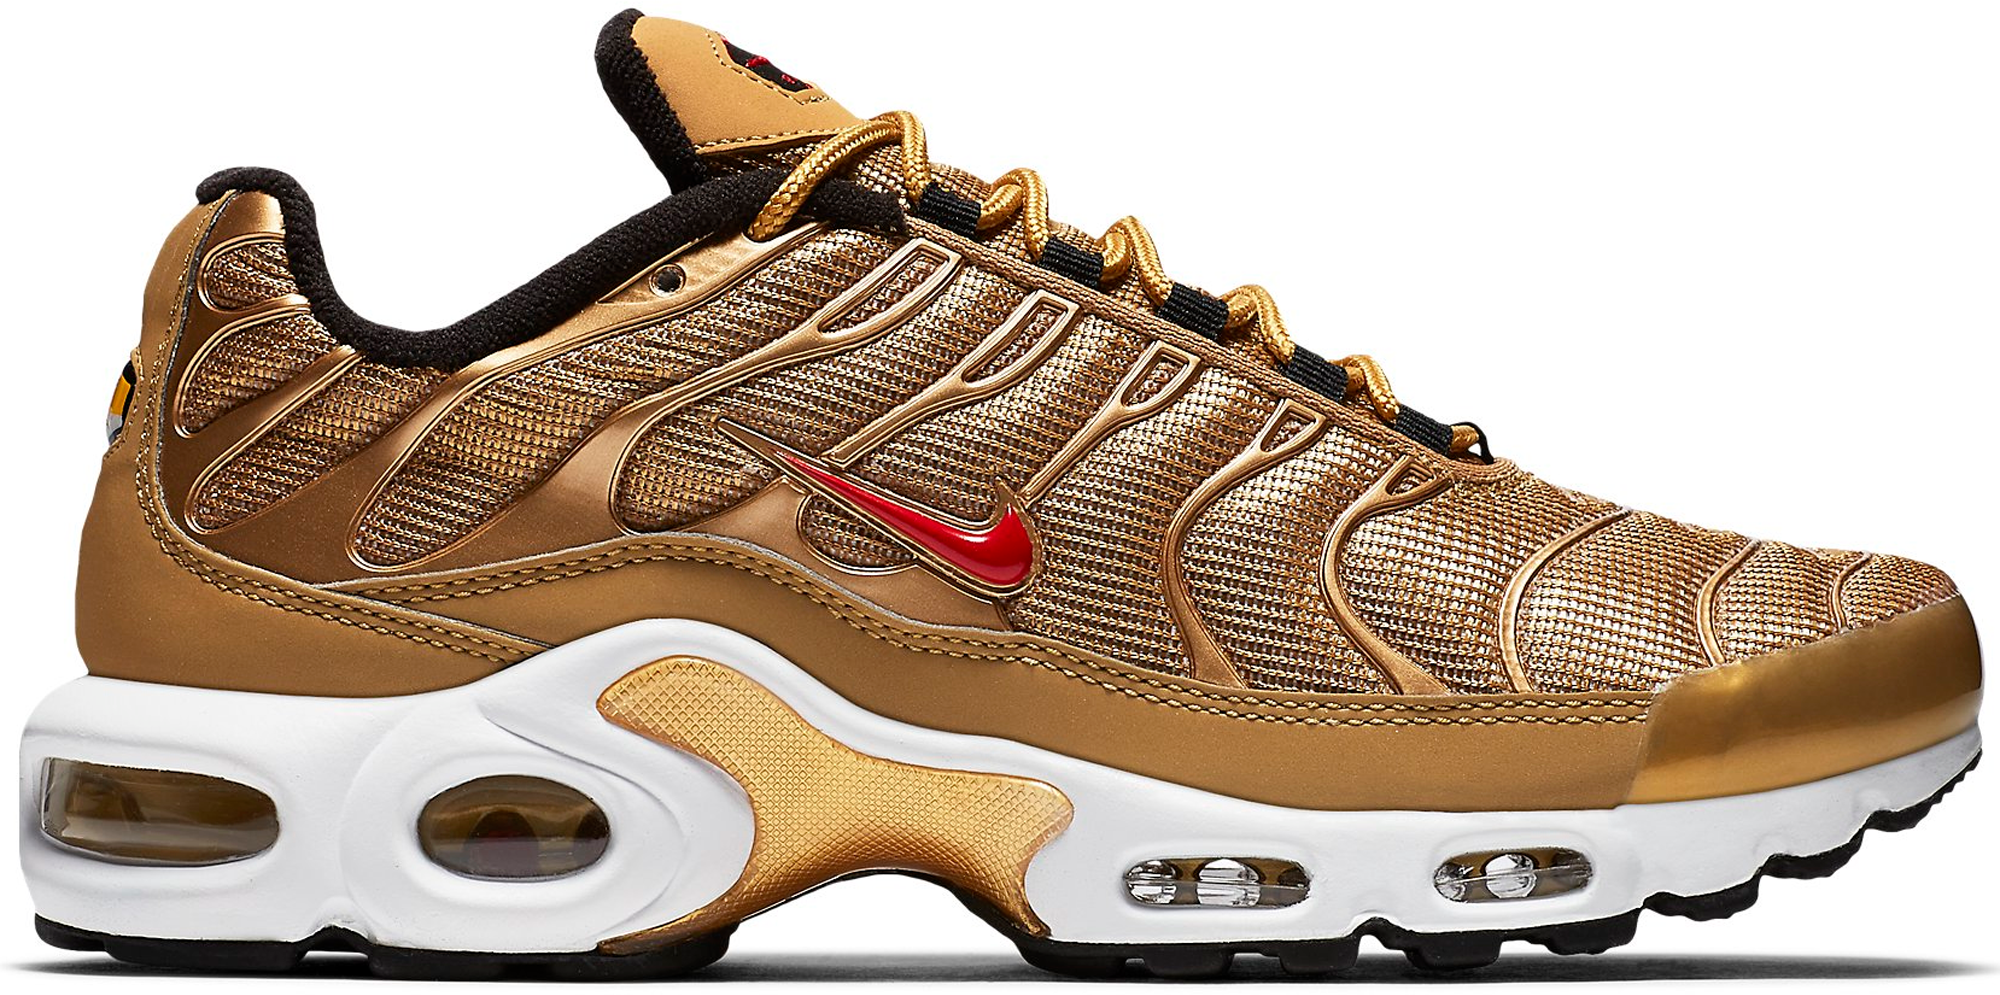 Air Max Plus Metallic Gold (W)